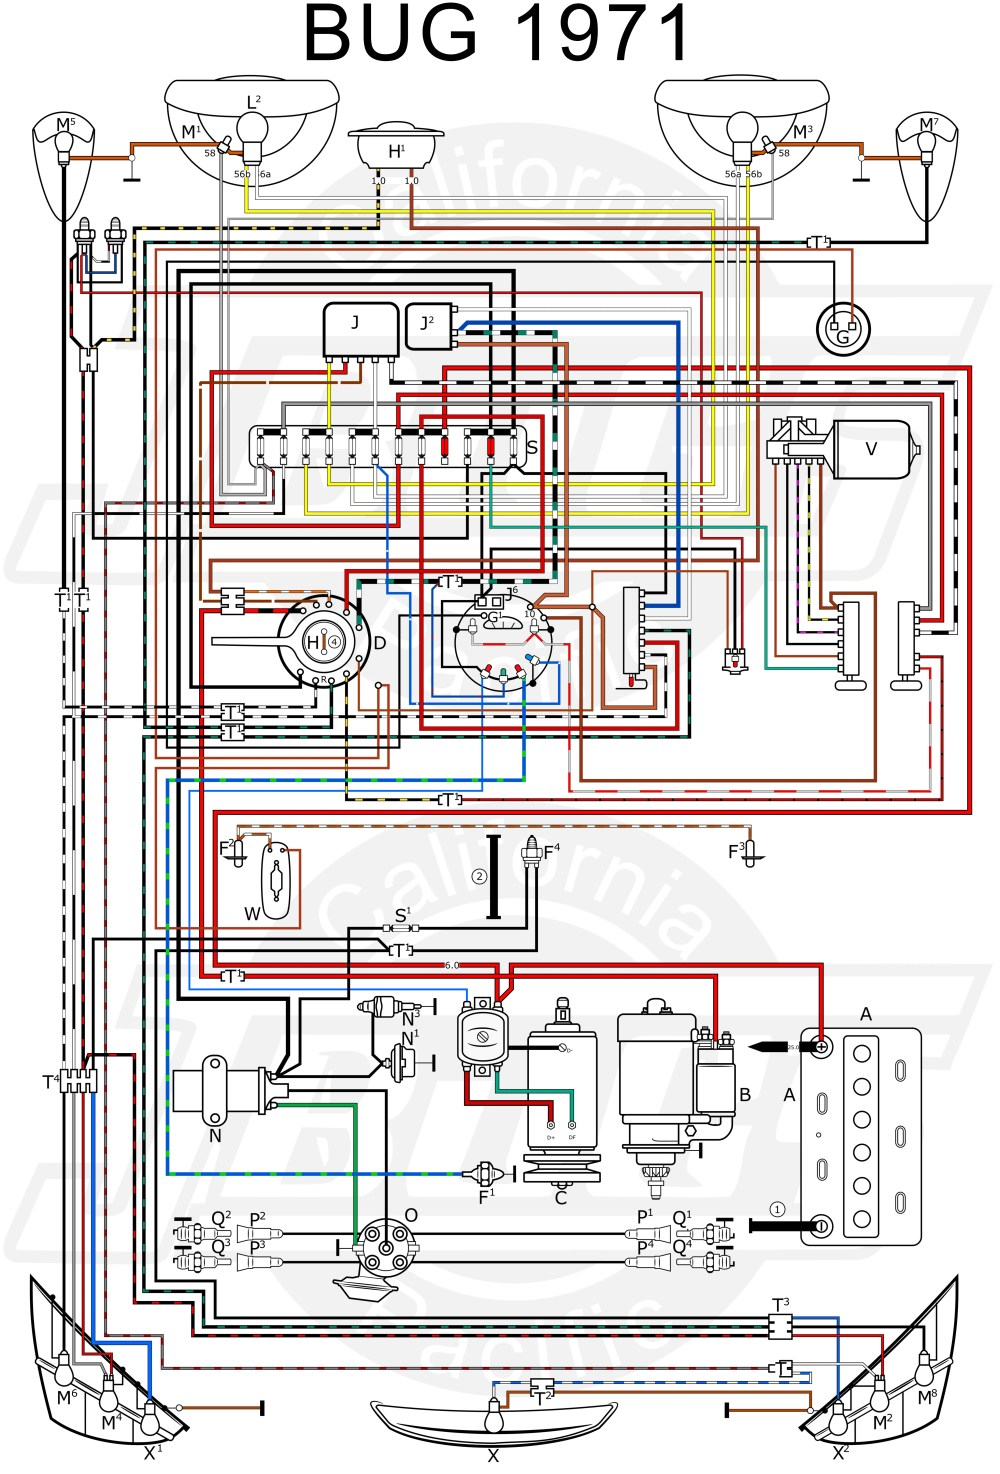 medium resolution of vw beetle wiring diagram light wiring diagram third level vw bug thermostat vw bug fuse diagram